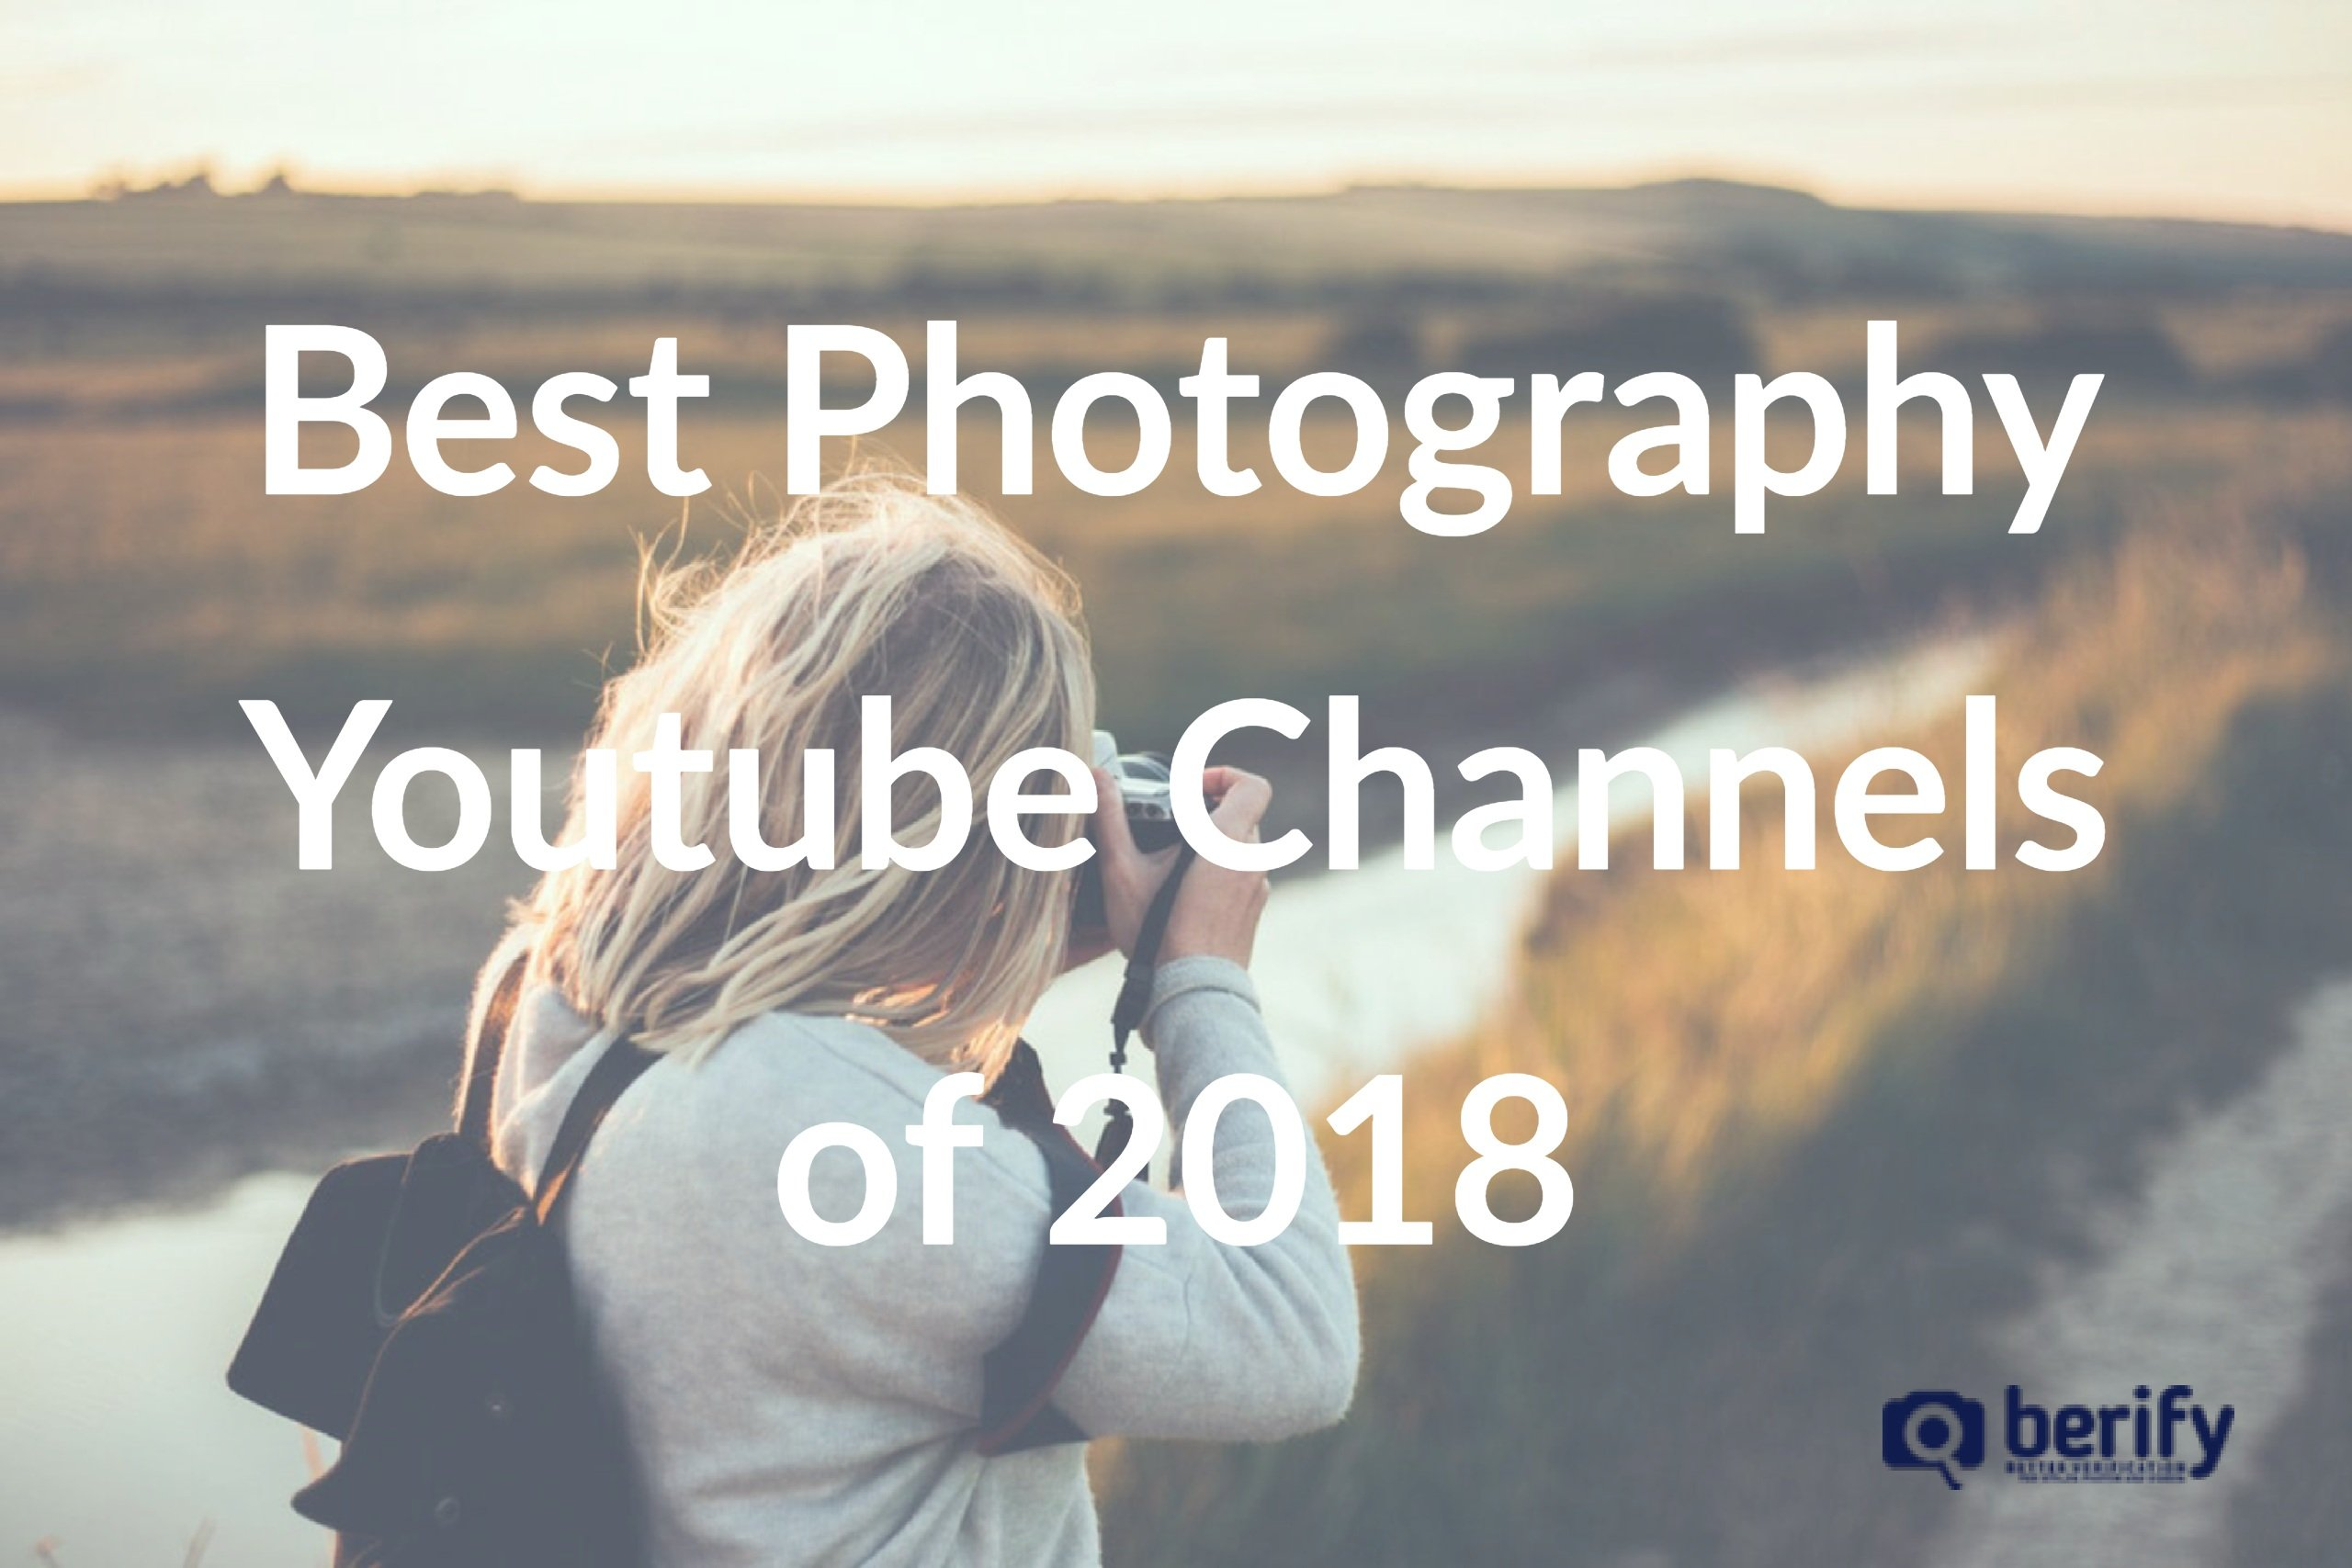 The Best Photography YouTube Channels [2018]